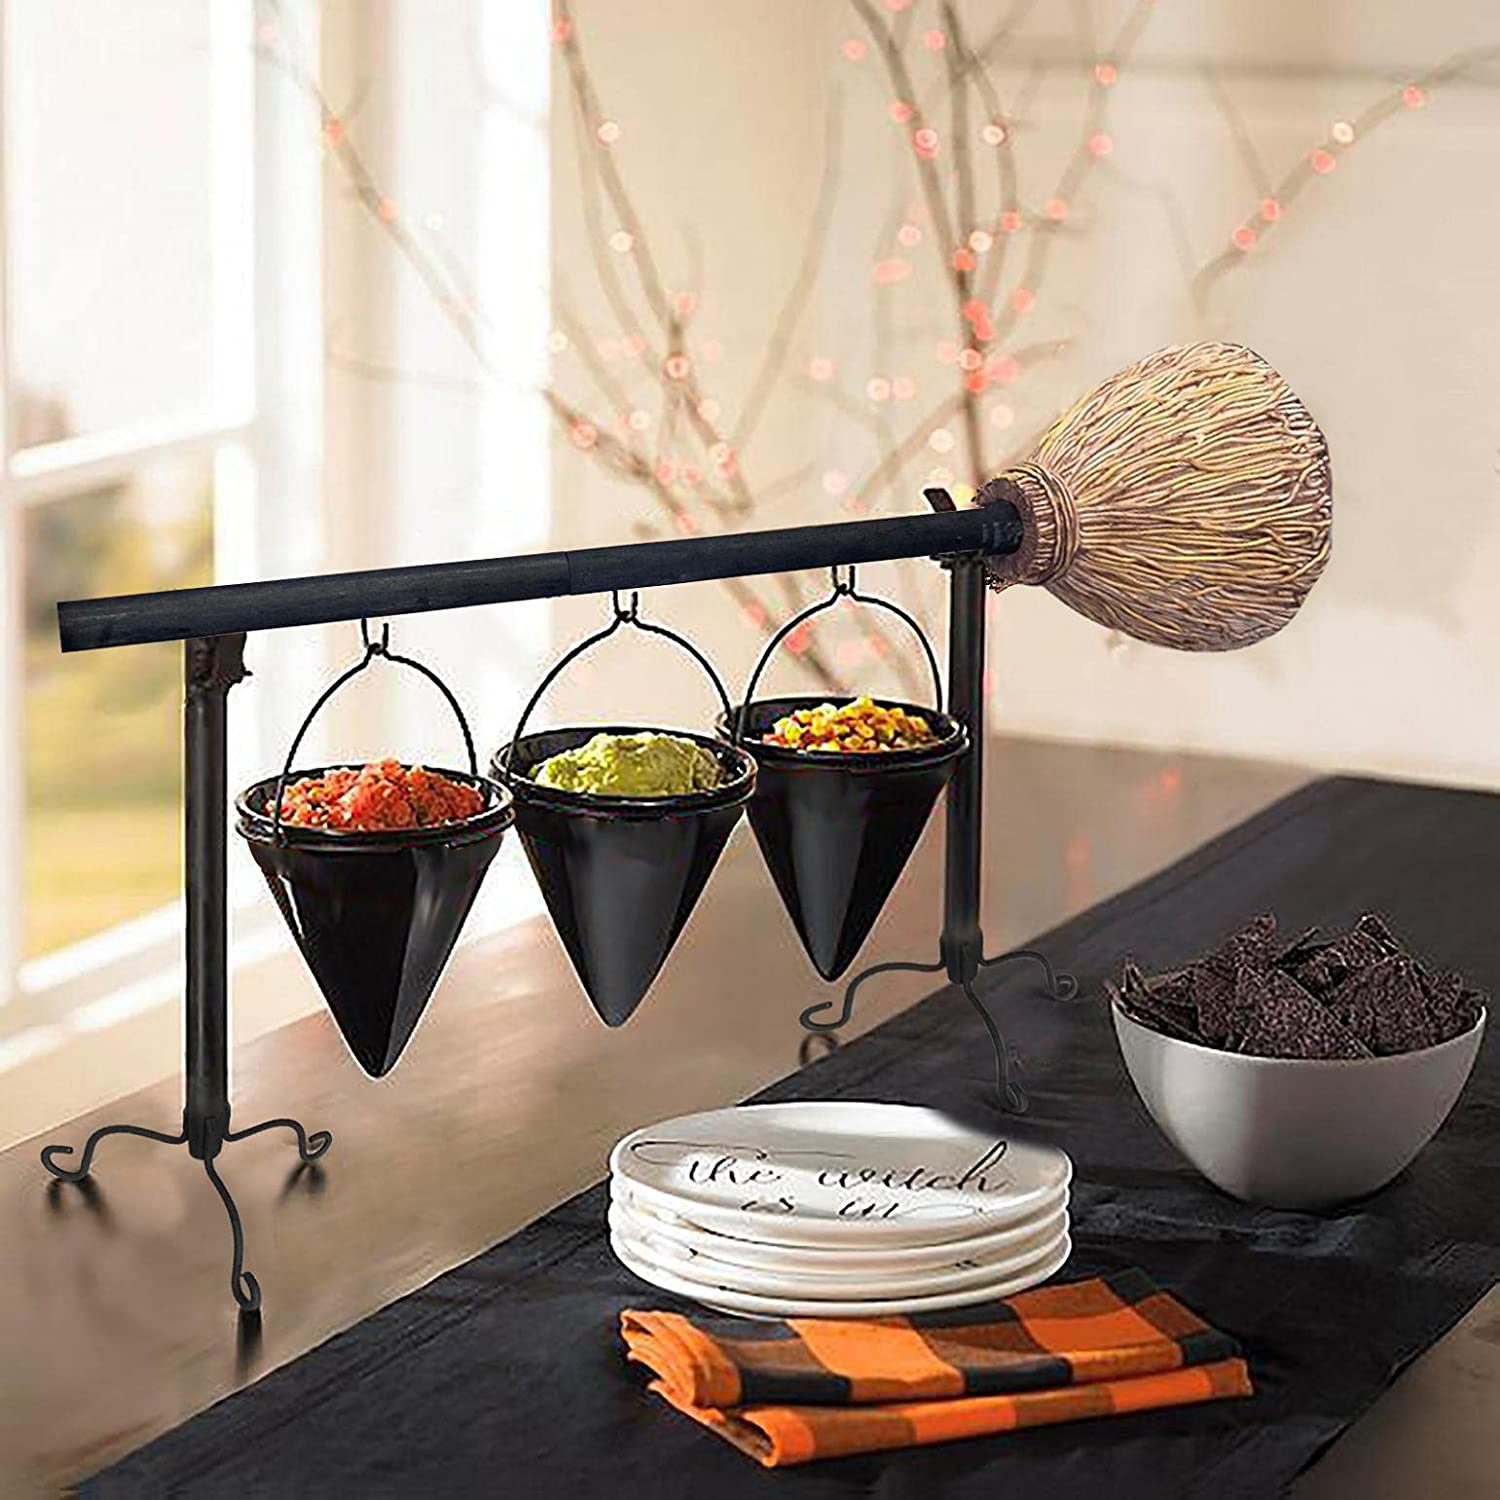 Halloween Broomstick Snack Gifts Bowl Stand Popularity with Removable Basket Orga